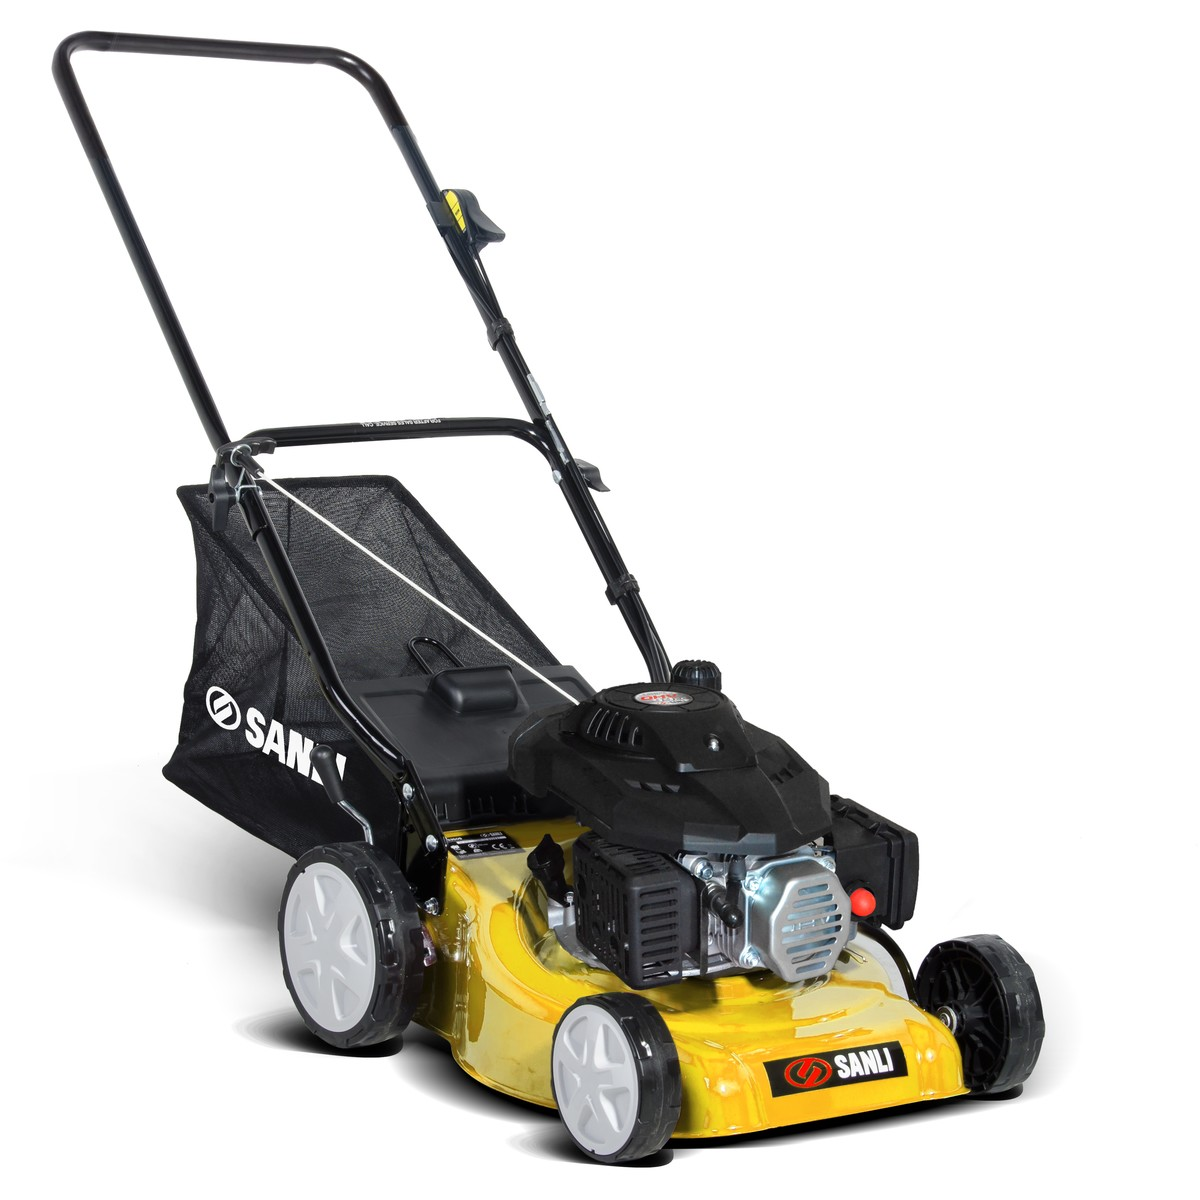 Sanli 4 Stroke Cut And Catch Lawn Mower Big W